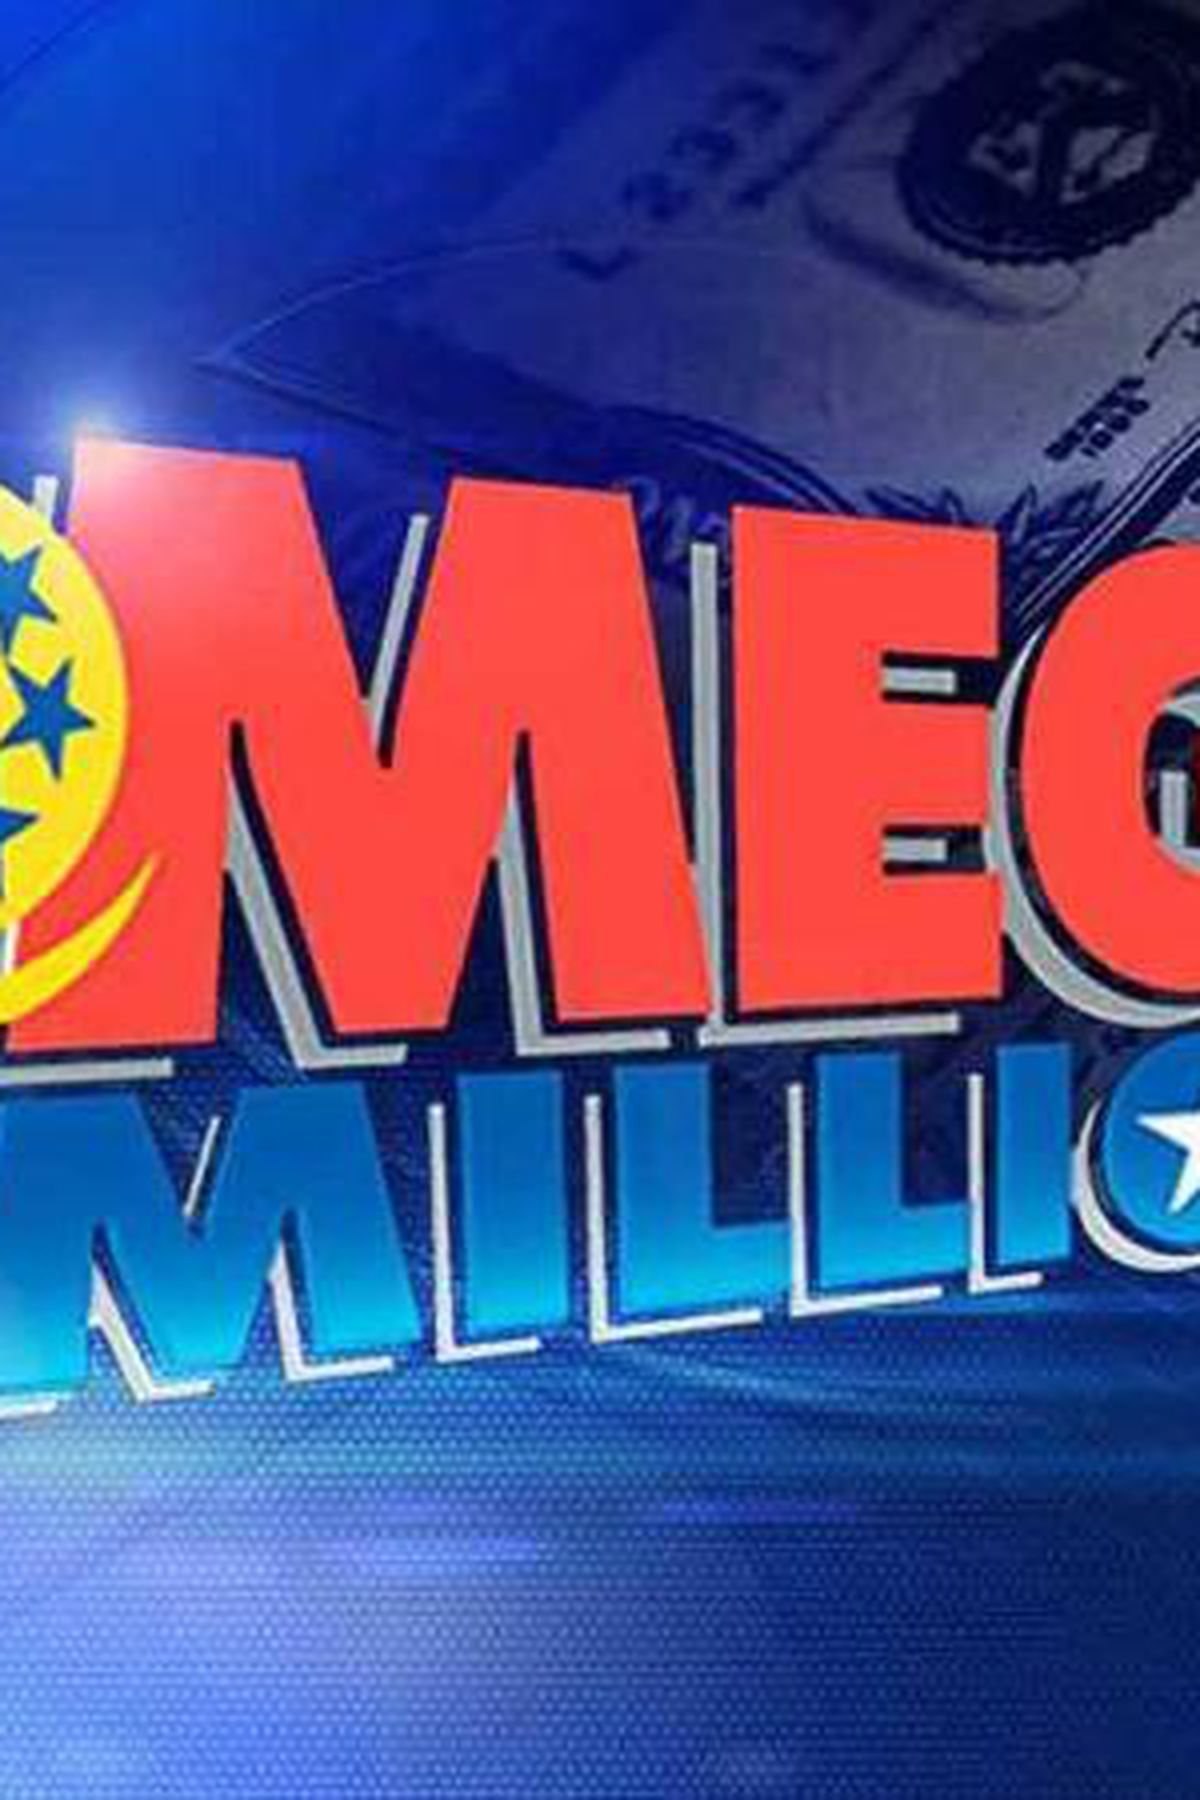 Tonight S Mega Millions Drawing Six Years To The Day Since Kansas Player Won One Third Of Record Mega Millions Jackpot